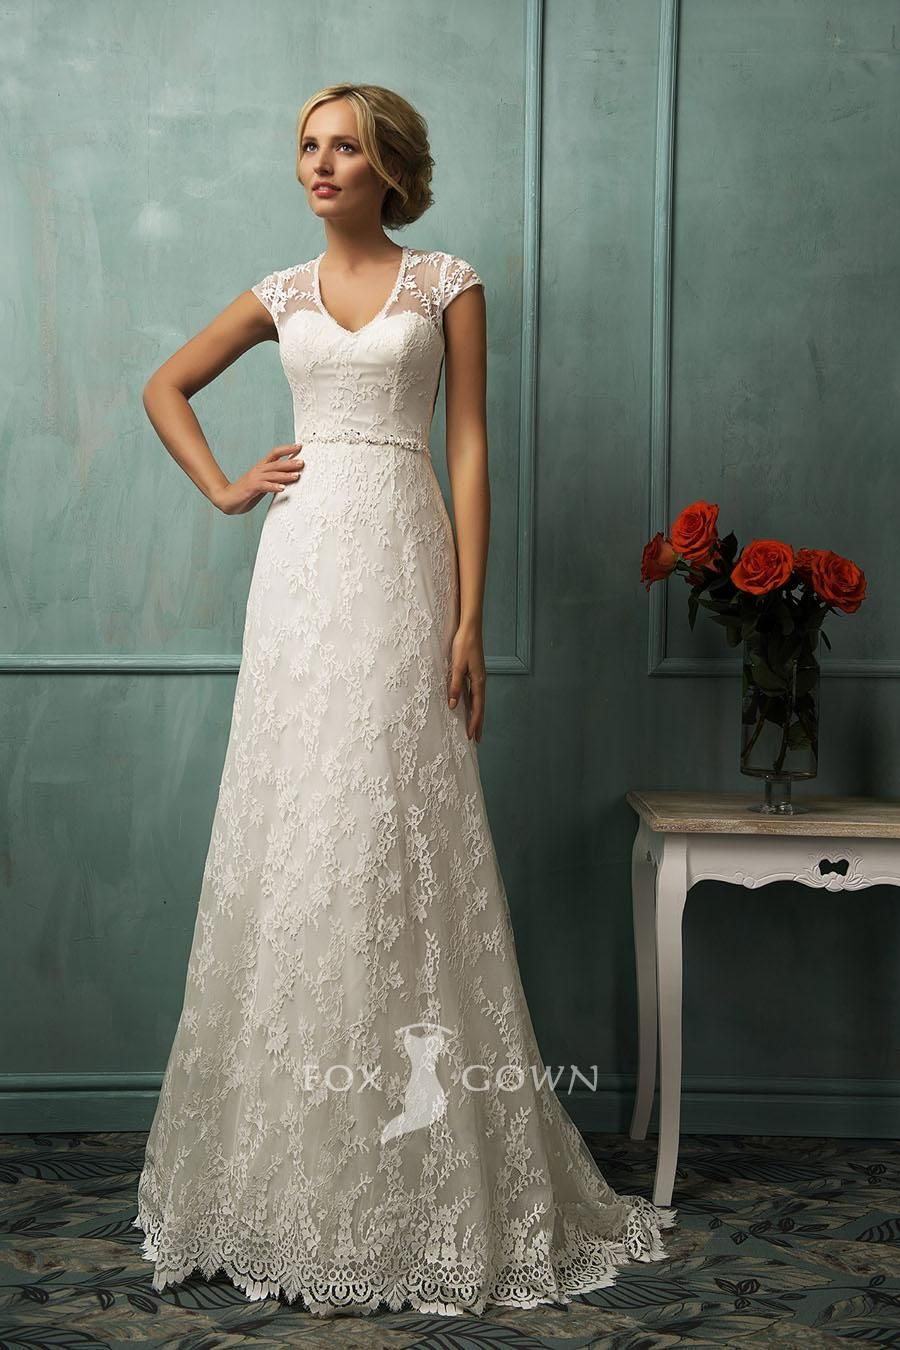 Illusion cap sleeve vneckline lace aline bridal gown carrie